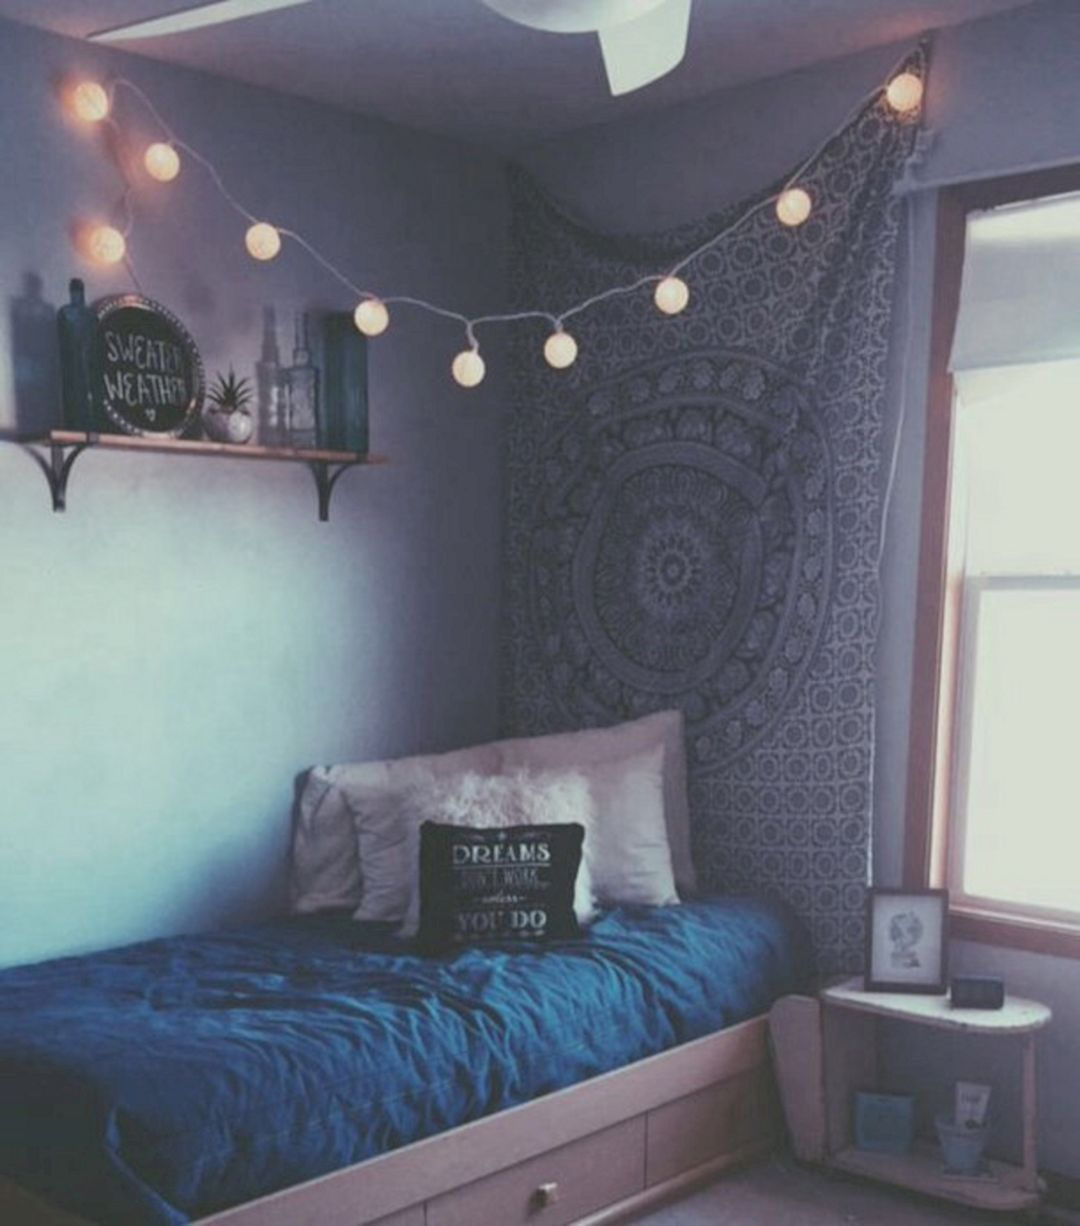 Tumblr Grunge Room Aesthetic College Apartment Decor Bedroom